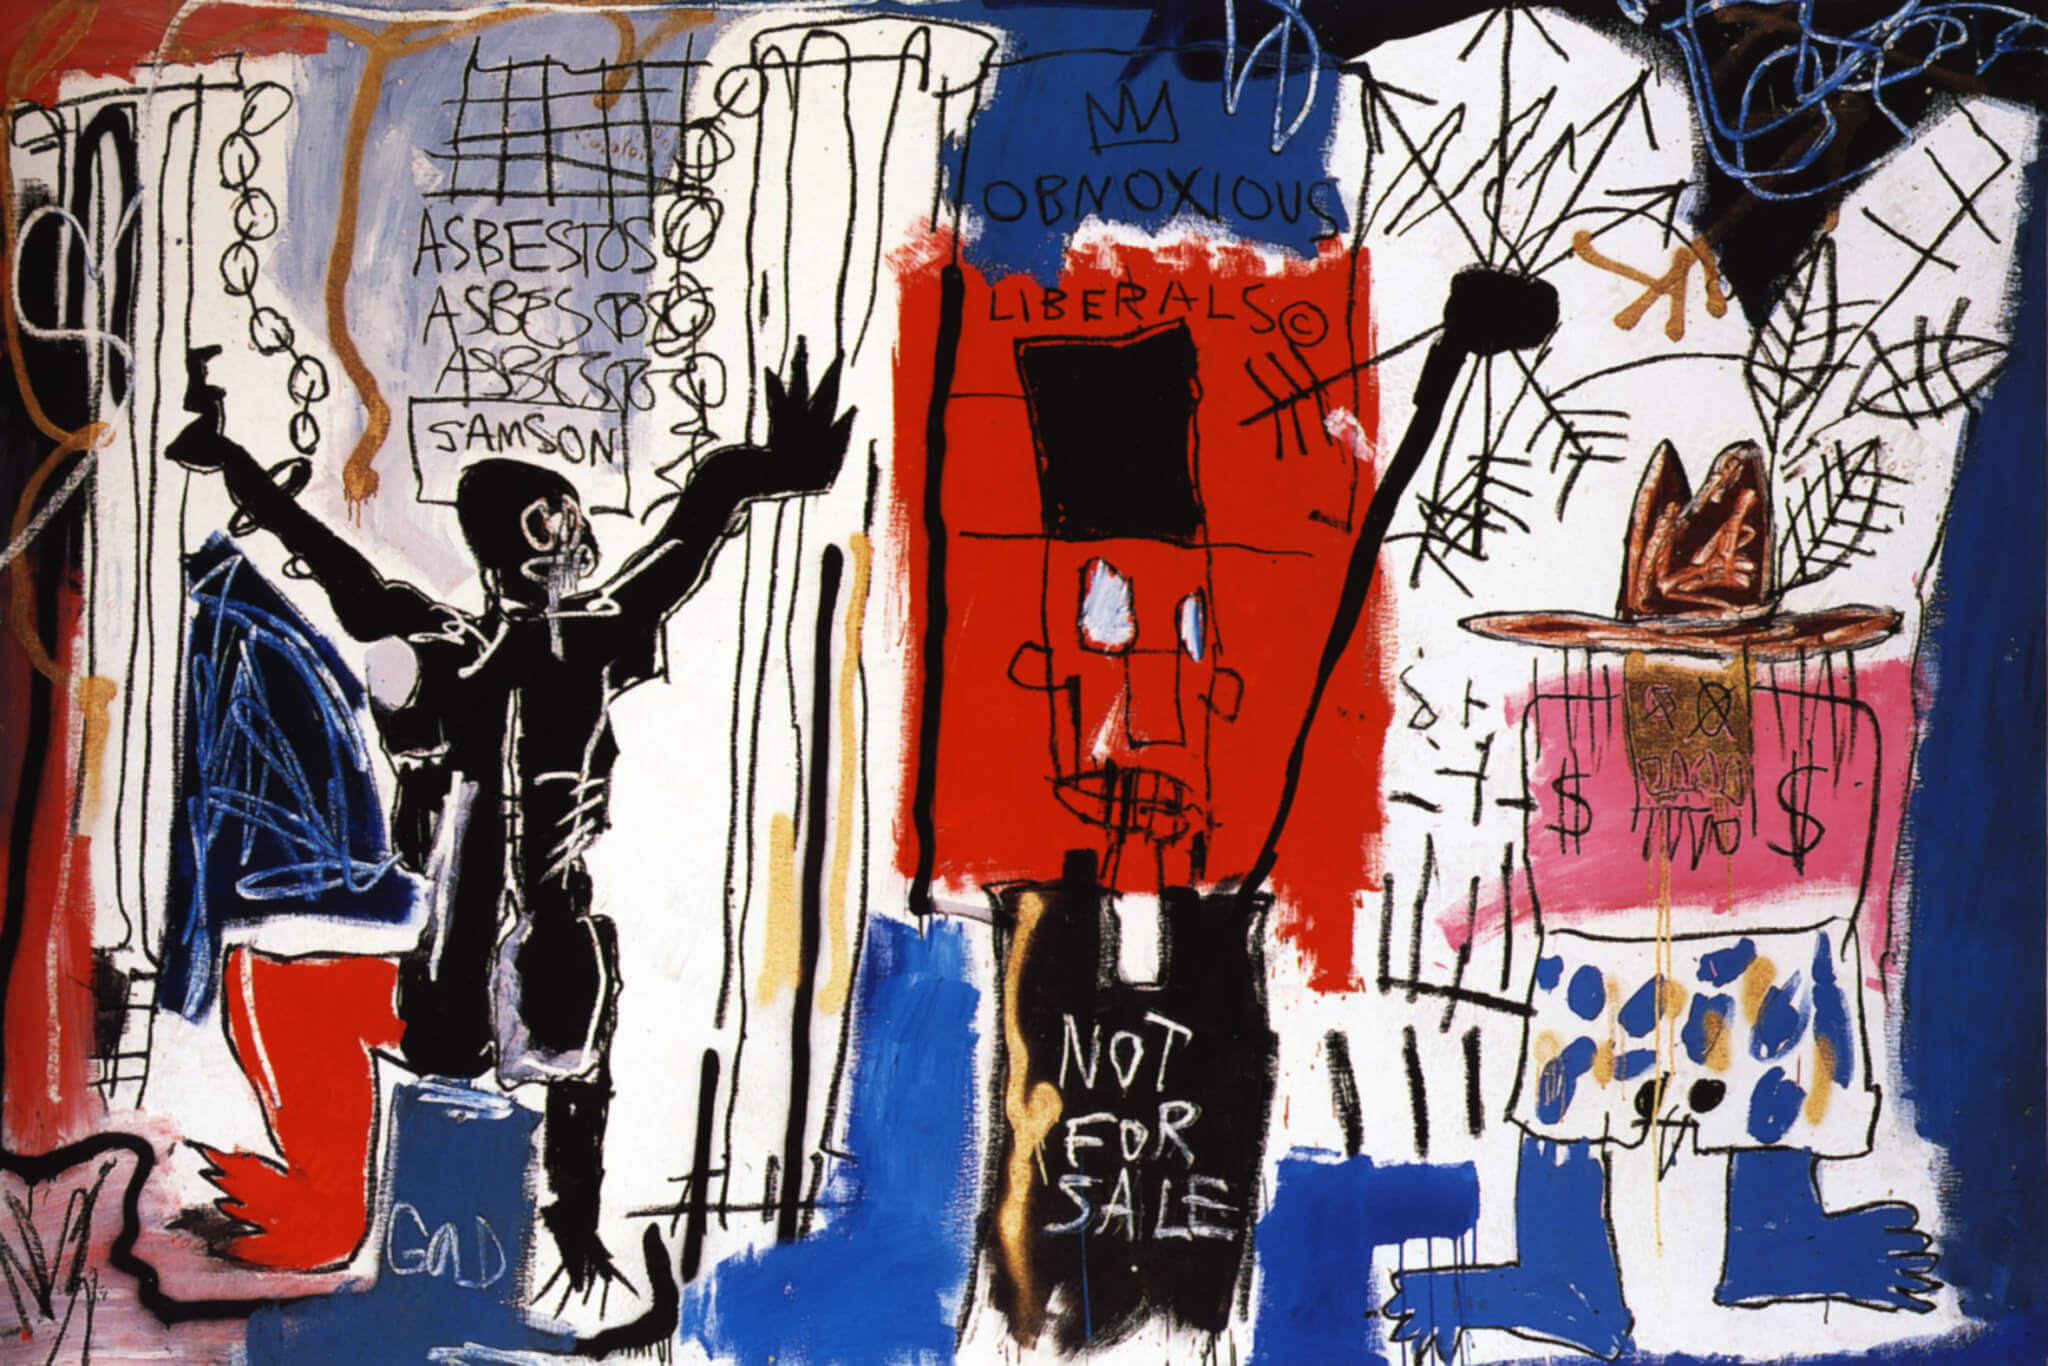 Exhibición de Basquiat por parte de Fondation Louis Vuitton